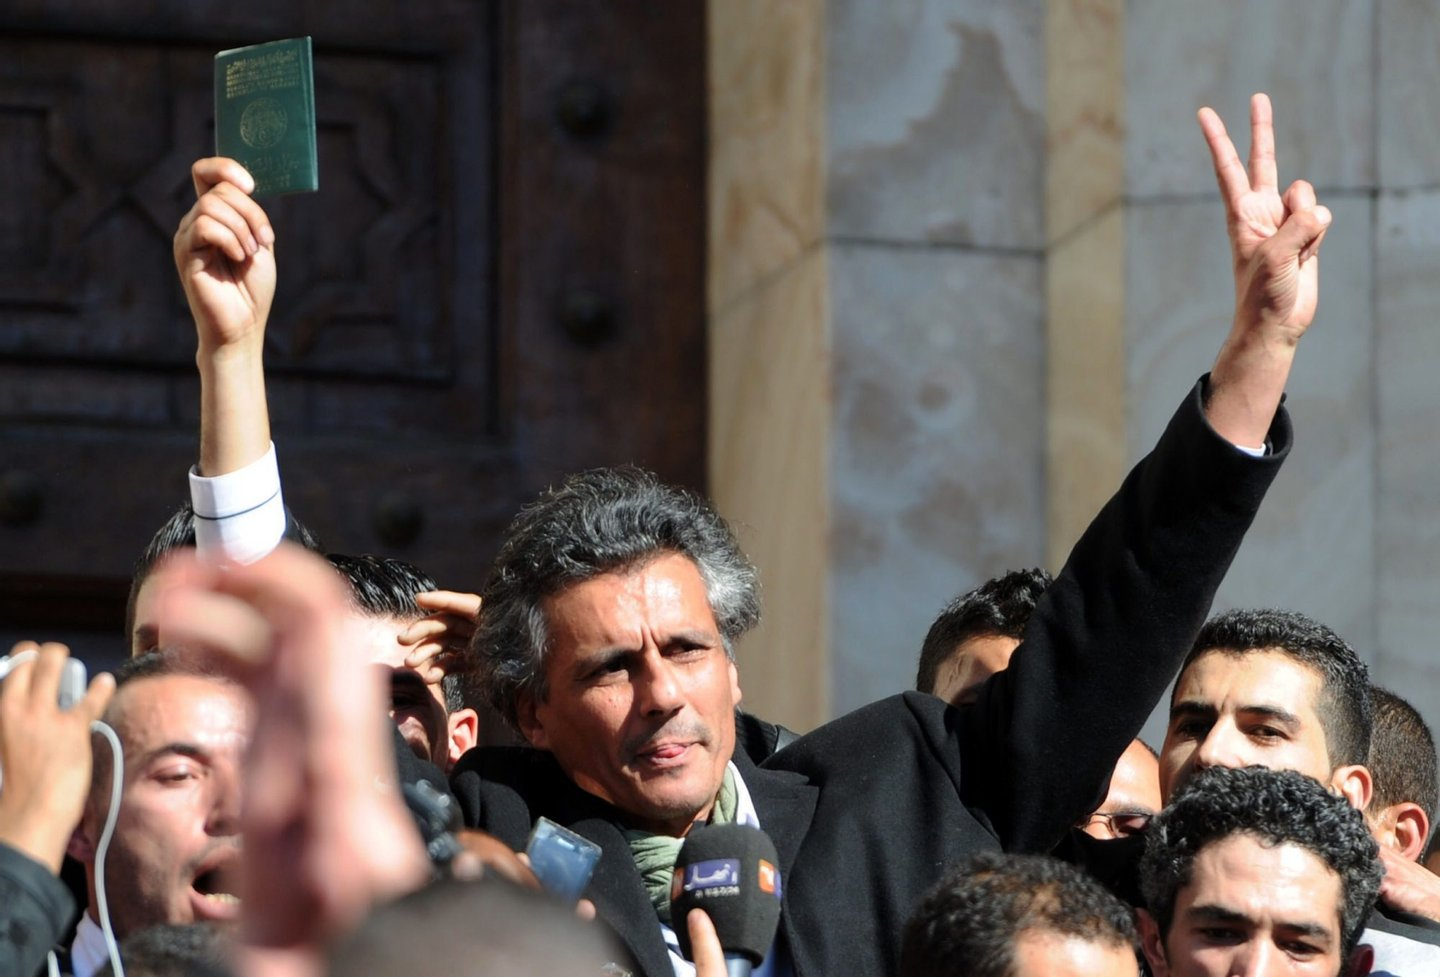 Rachid Nekkaz, who wanted to be candidate but couldn't register for Algeria's April 17 presidential election, flashes the sign of victory during a protest in his support in Algiers on March 8, 2014. Nekkaz said his candidature documents were stolen before he submits them at the constitutional council. AFP PHOTO / FAROUK BATICHE (Photo credit should read FAROUK BATICHE/AFP/Getty Images)